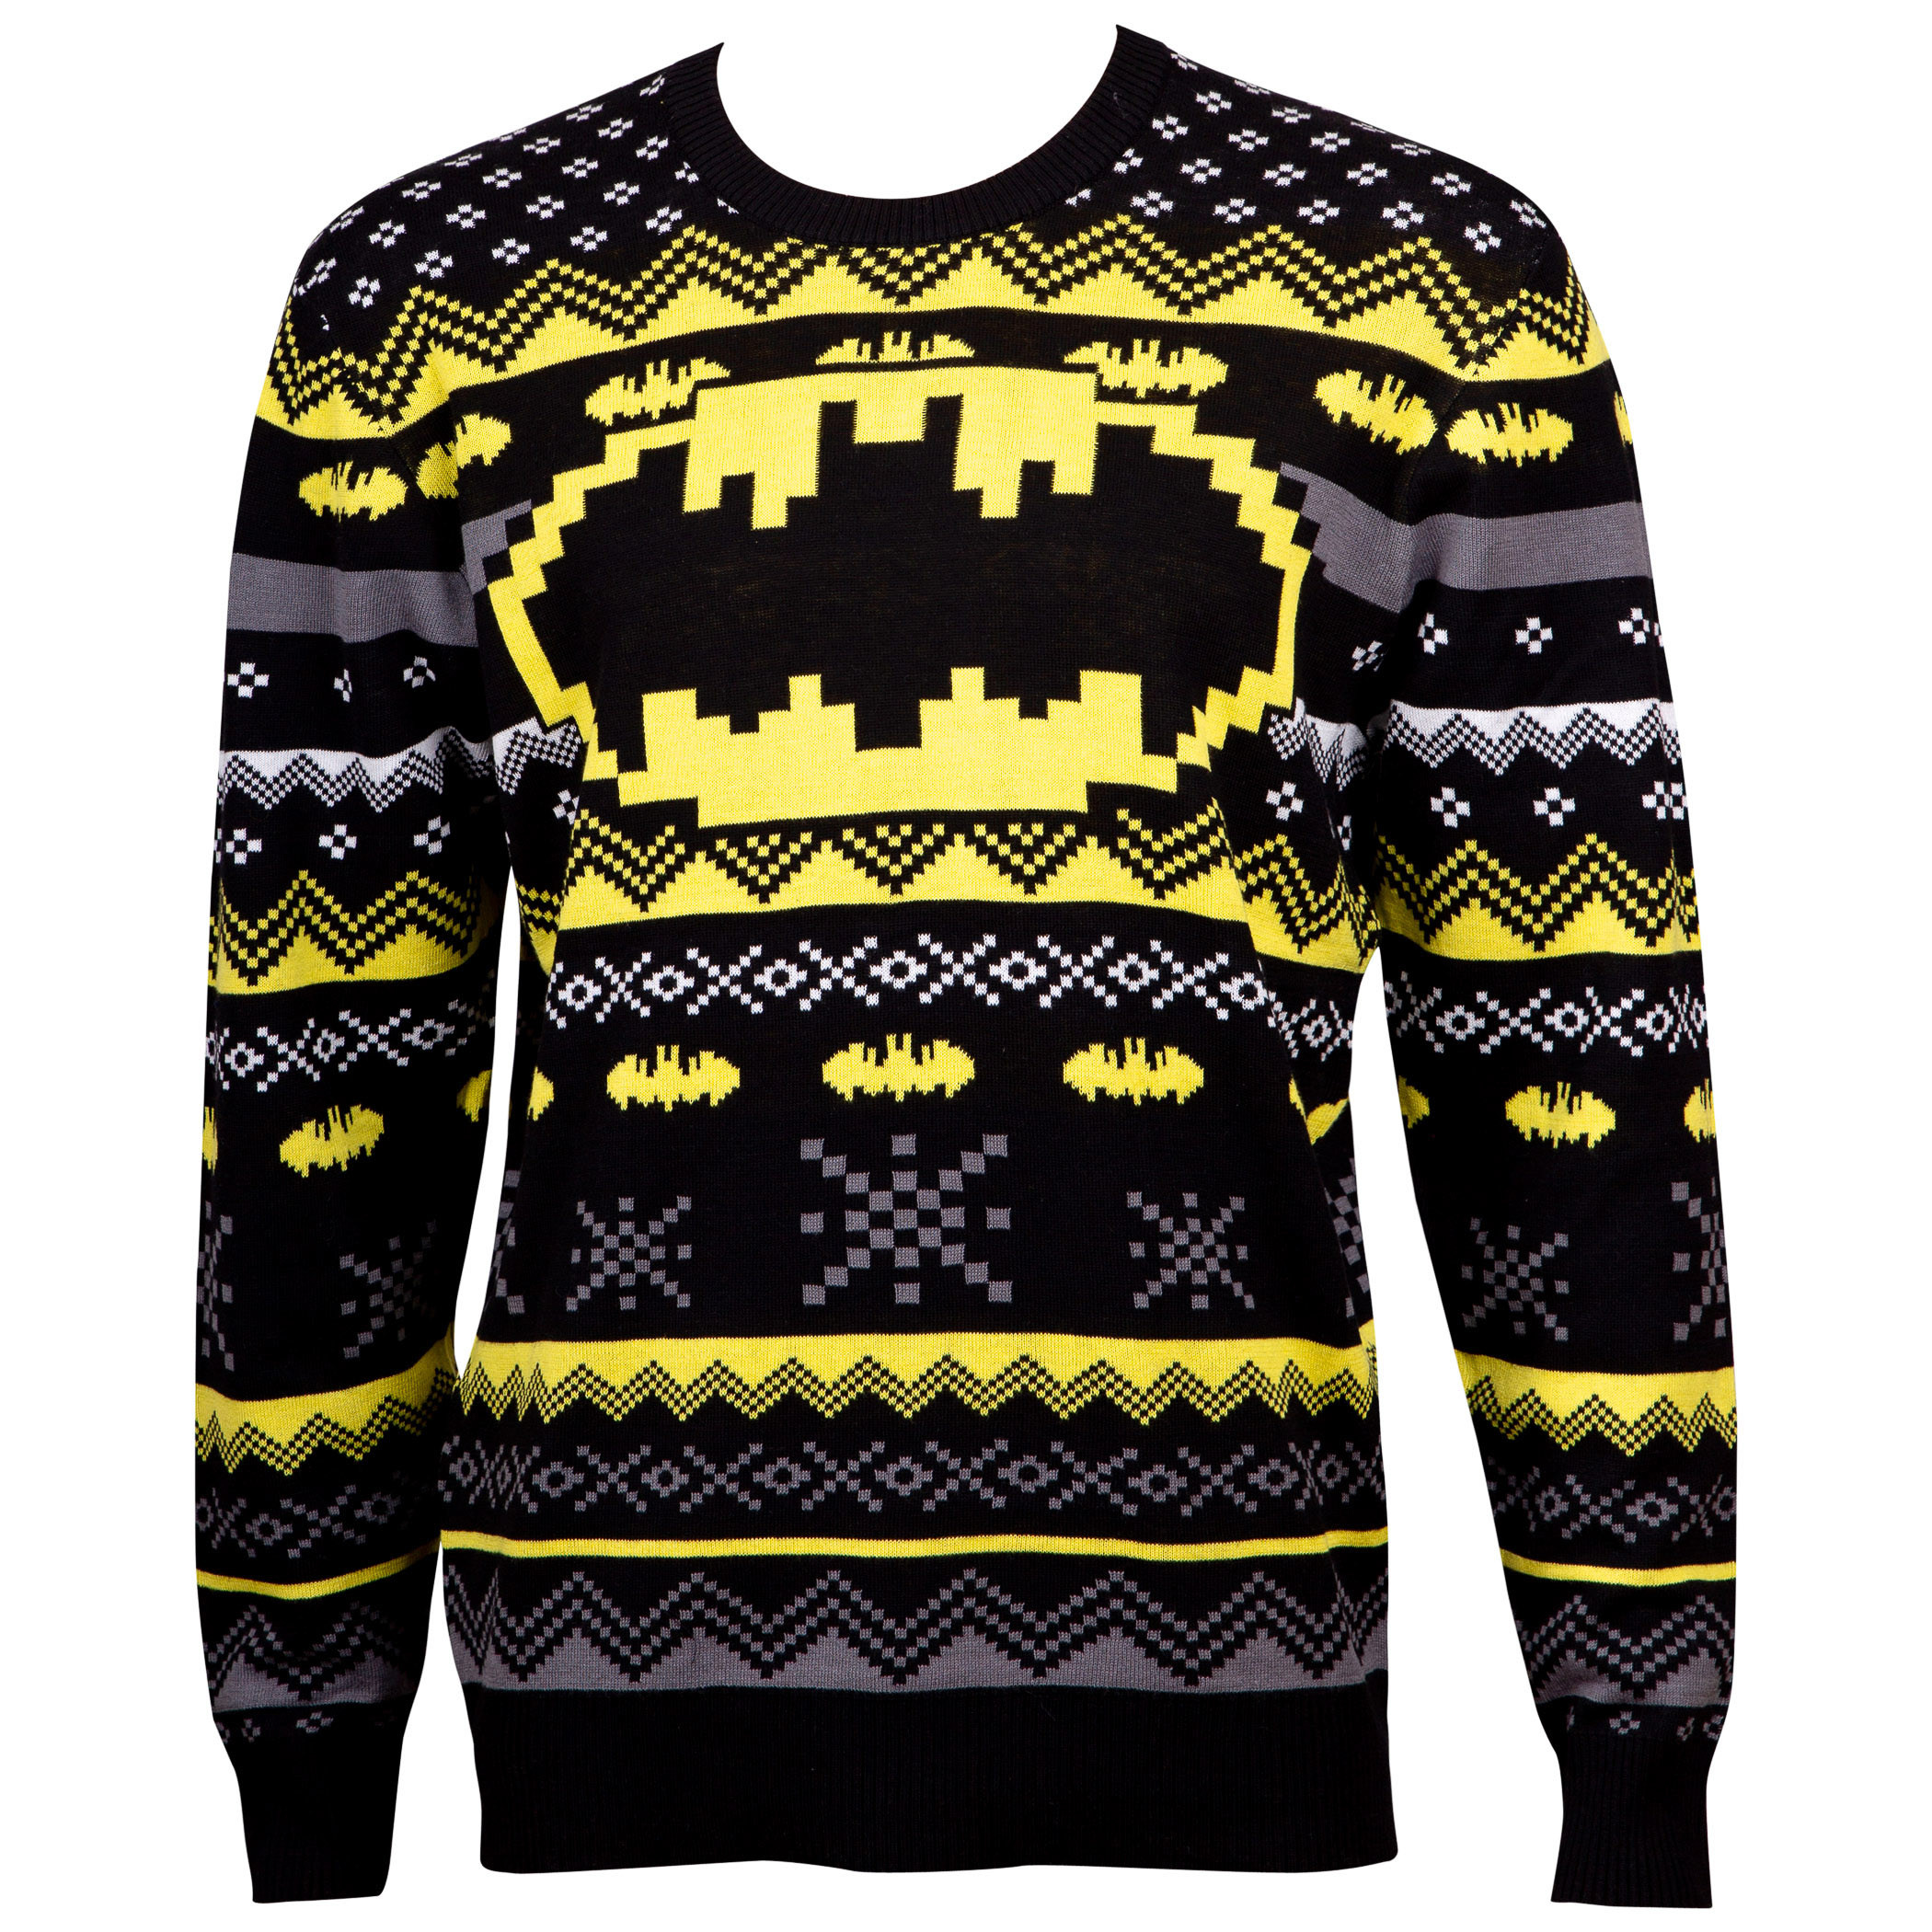 Batman Patterned Ugly Holiday Sweater